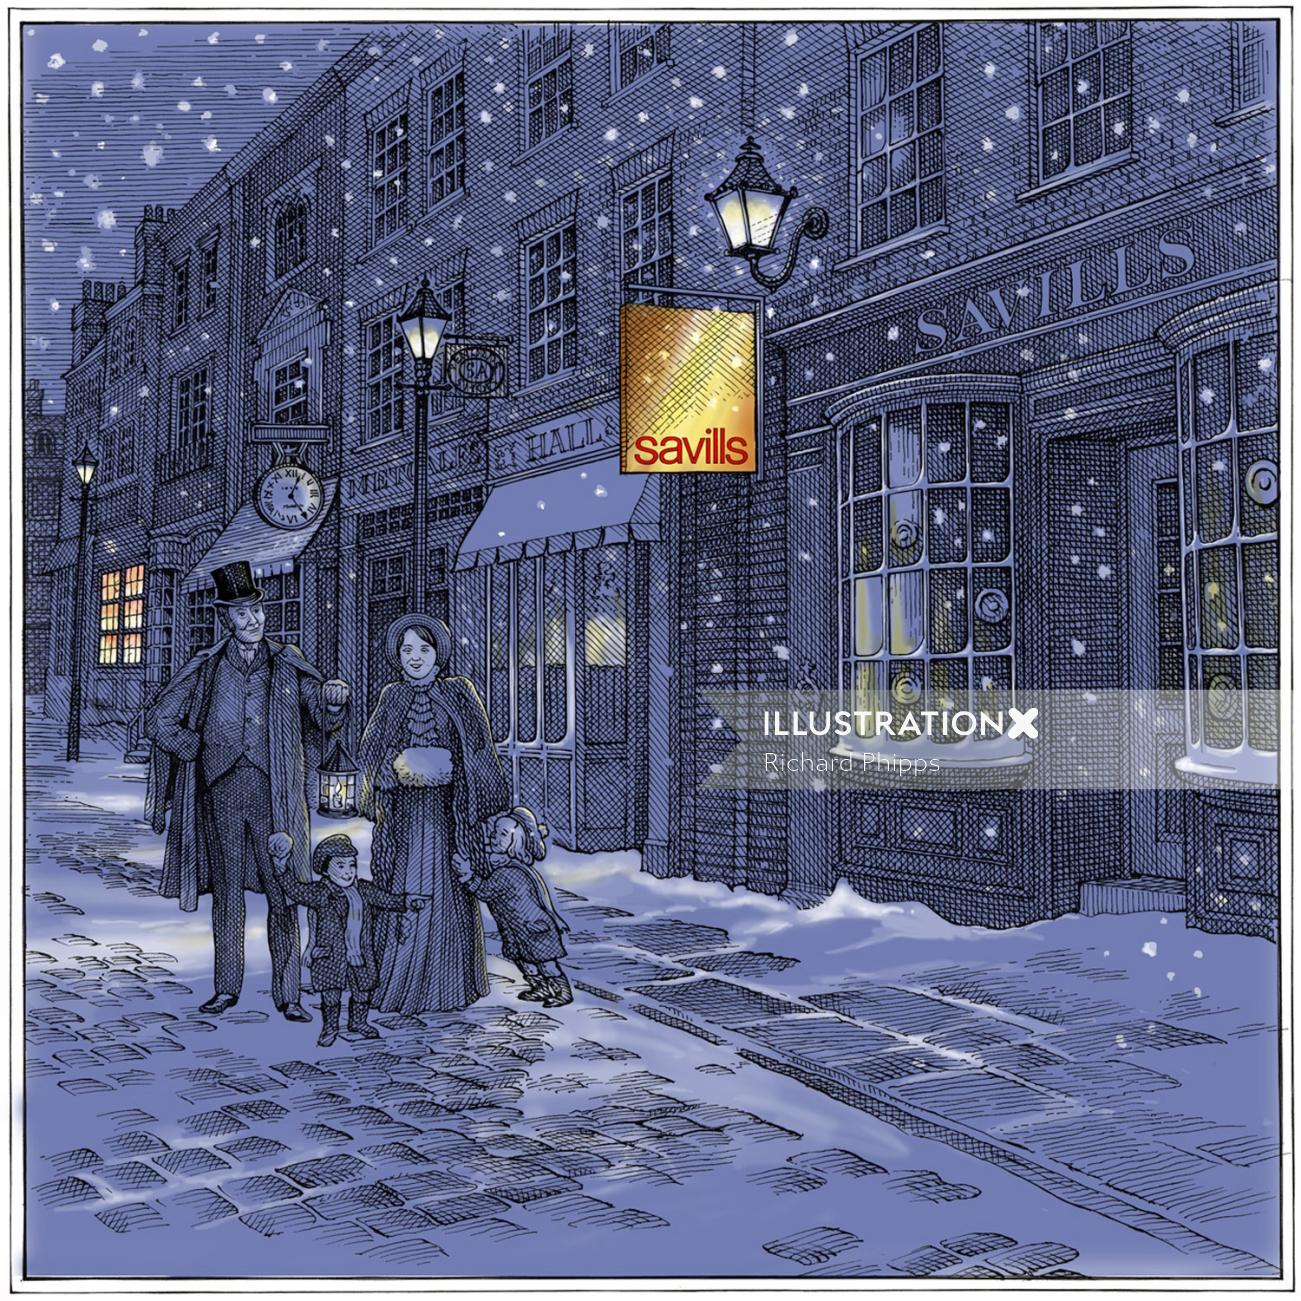 illustration of Savills Christmas card